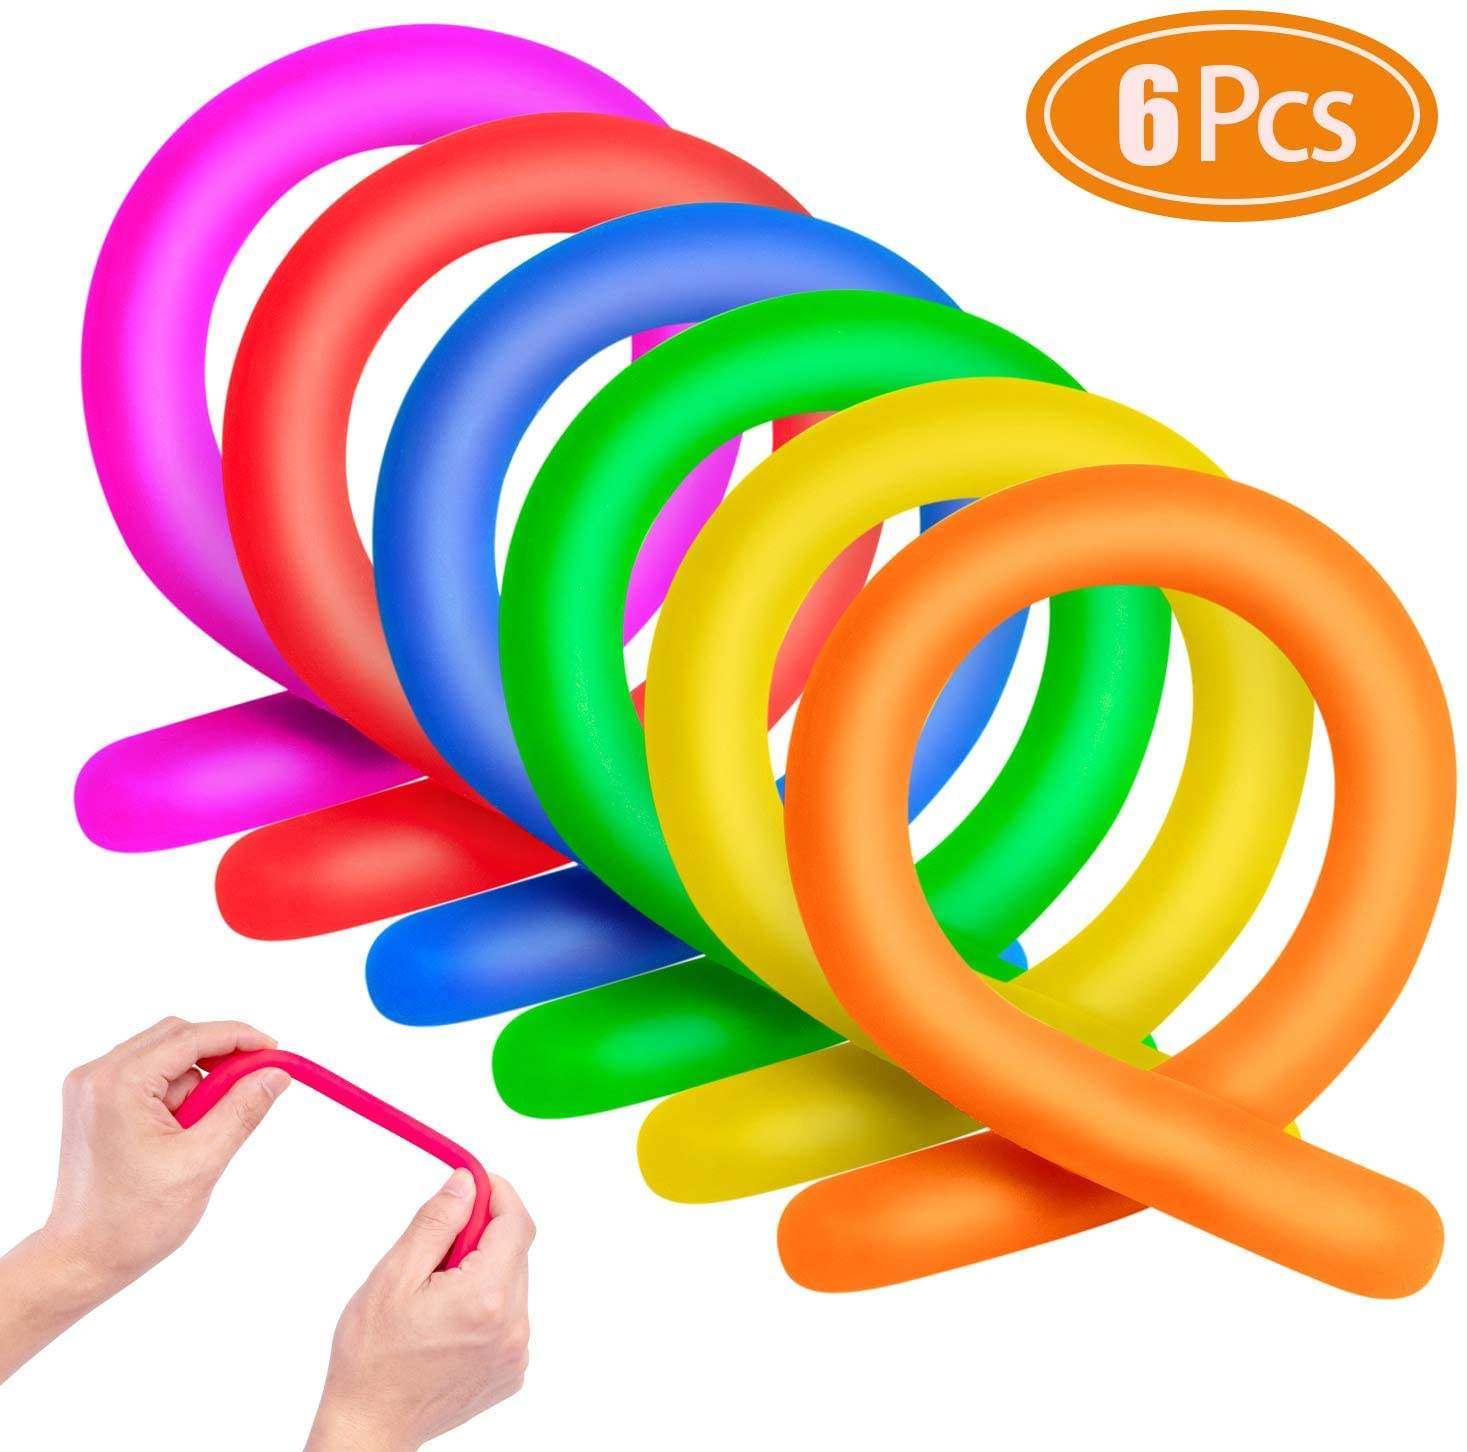 28 Cm Kinderen Volwassen Decompressie <span class=keywords><strong>Speelgoed</strong></span> Lichtgevende Noodle Stretch String Tpr Touw Anti-Stress <span class=keywords><strong>Speelgoed</strong></span> String Fidget Autisme Vent <span class=keywords><strong>Speelgoed</strong></span>